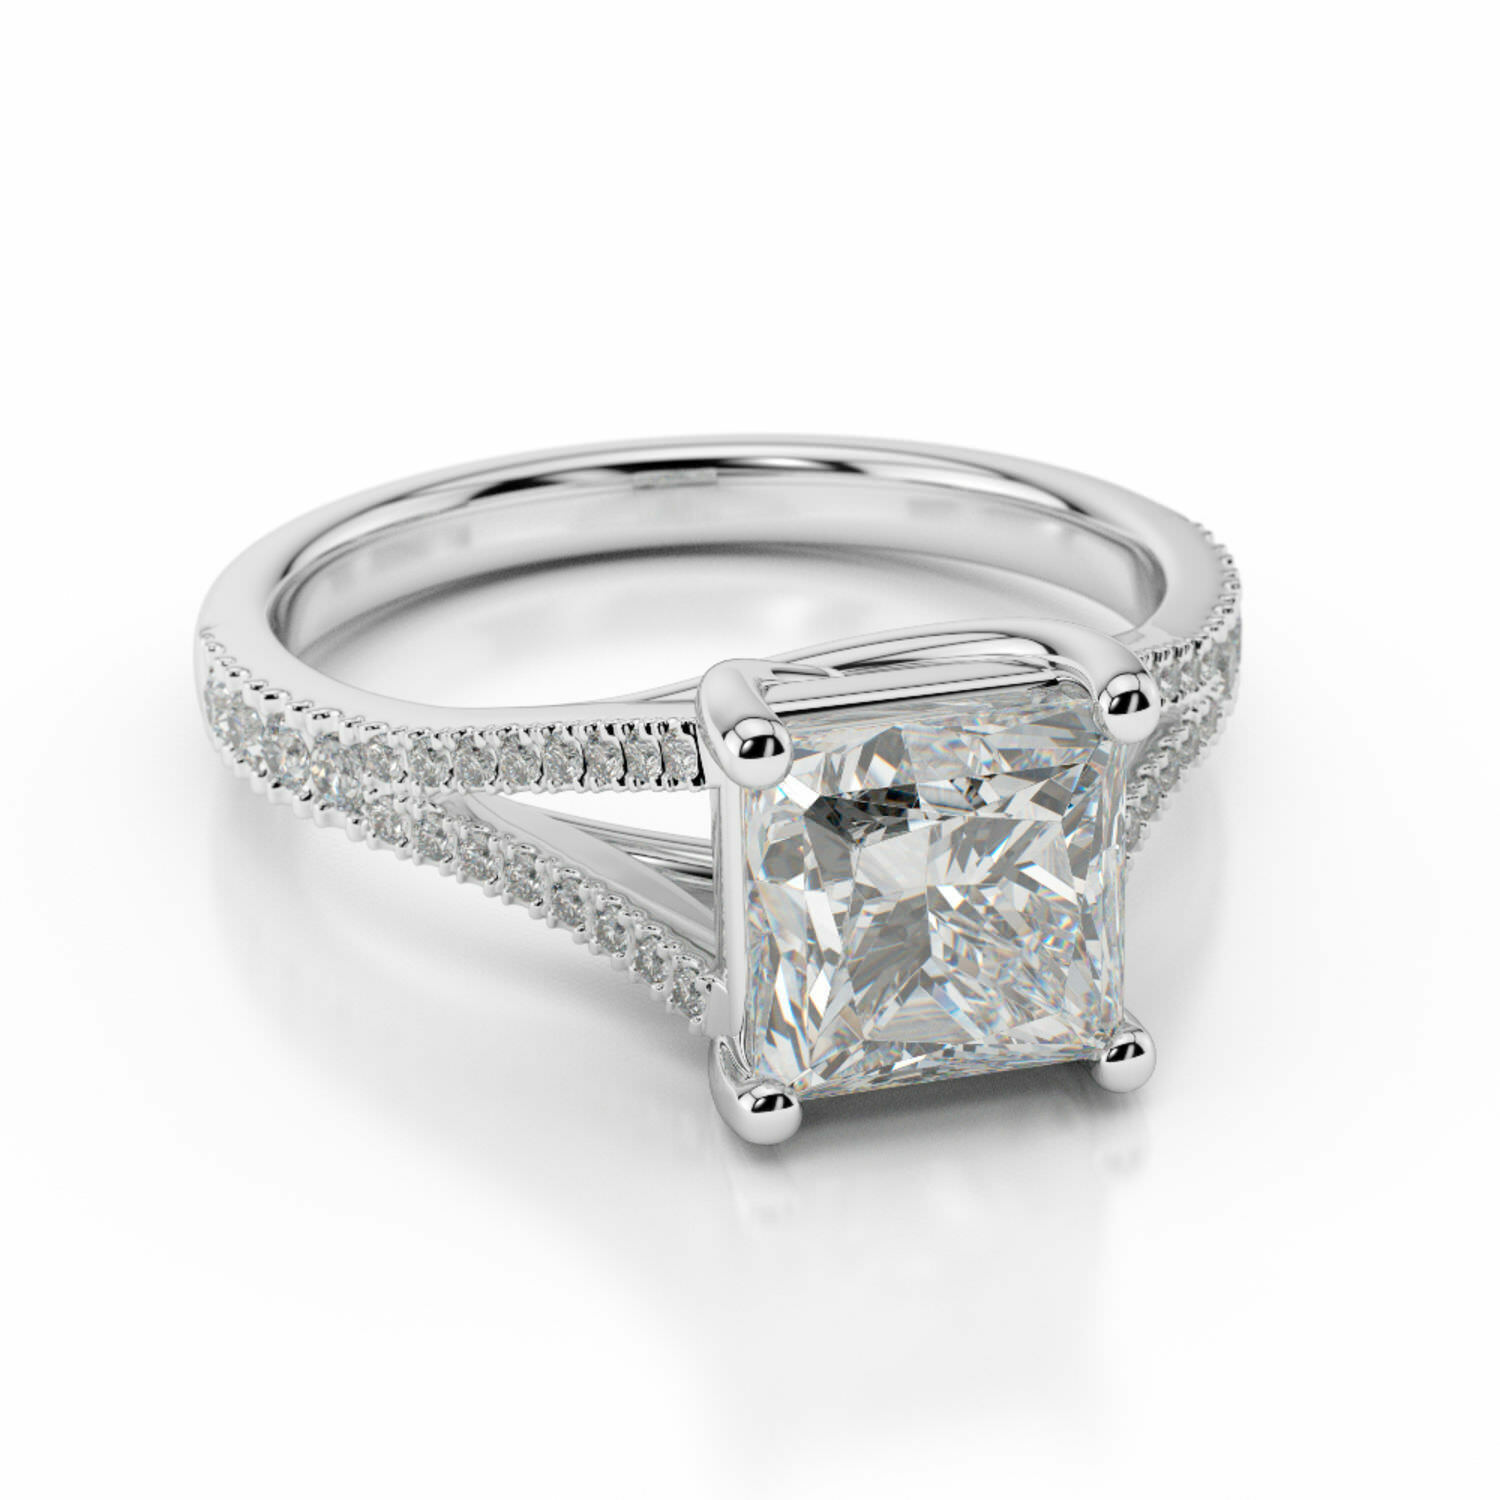 1.60 Ct Princess Cut Diamond Engagement Ring 14K Solid White gold Rings Size 6 7